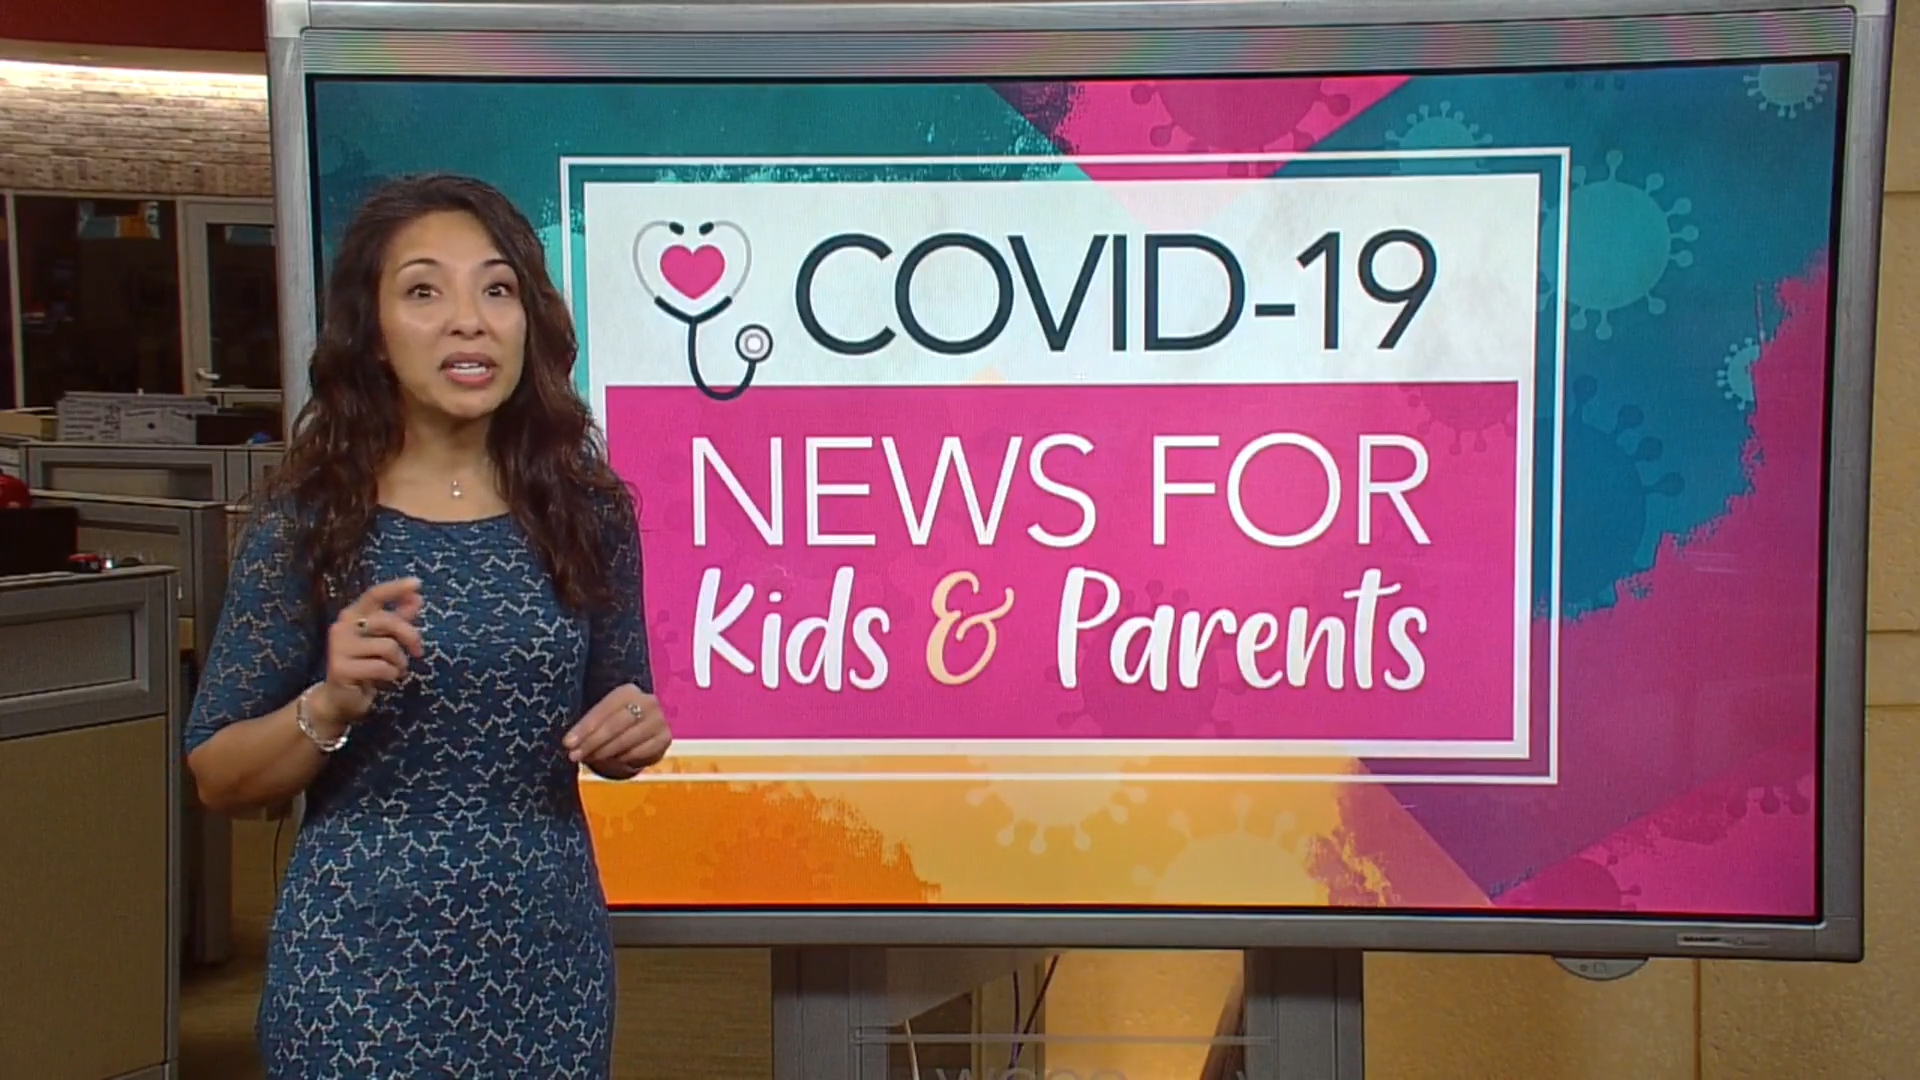 Dr. Gigi Chawla on WCCO: How Reading Can Profoundly Impact your Kids' Development